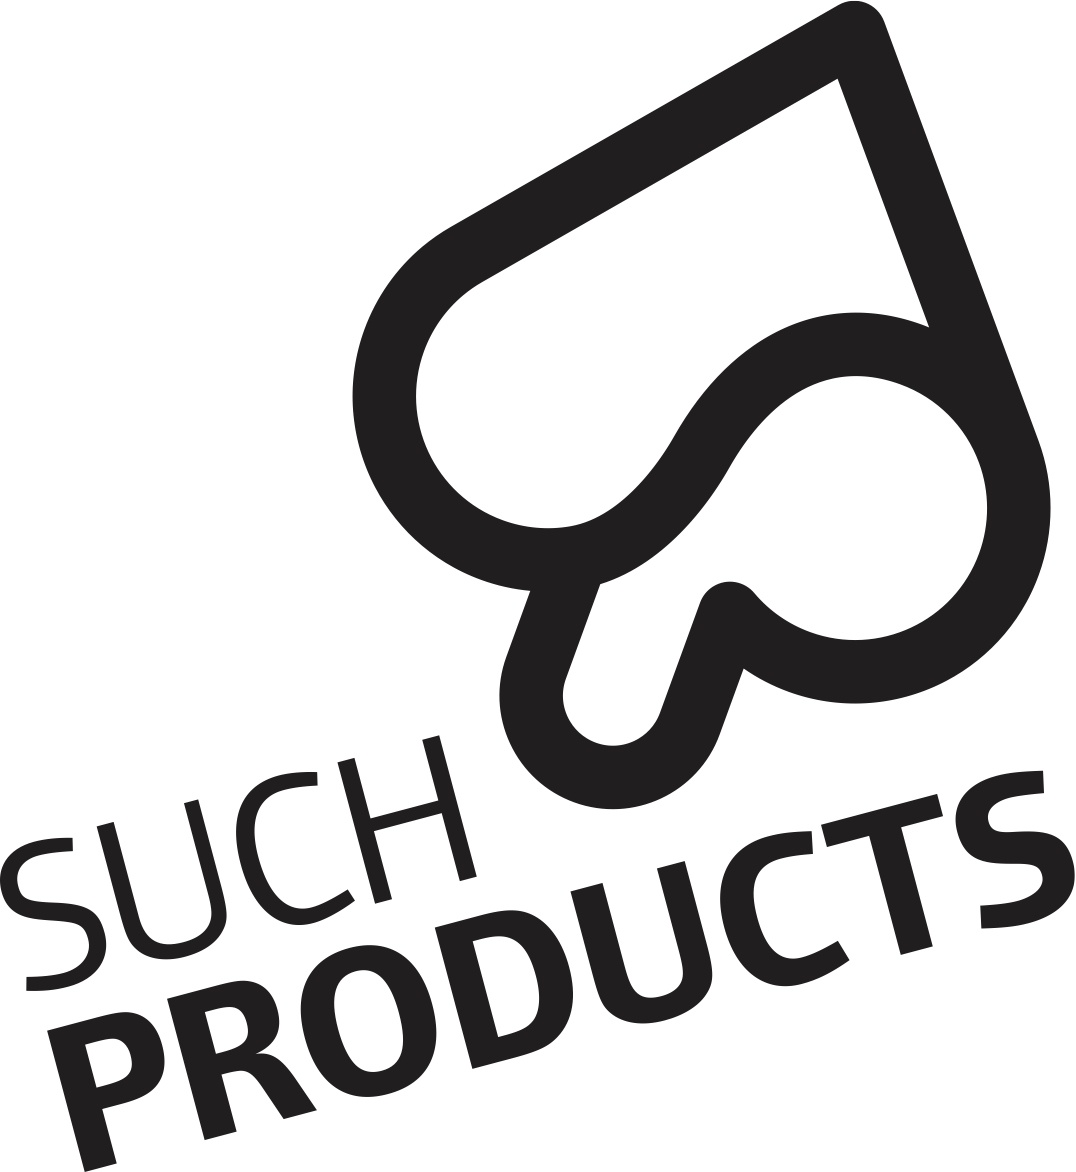 Suchproducts